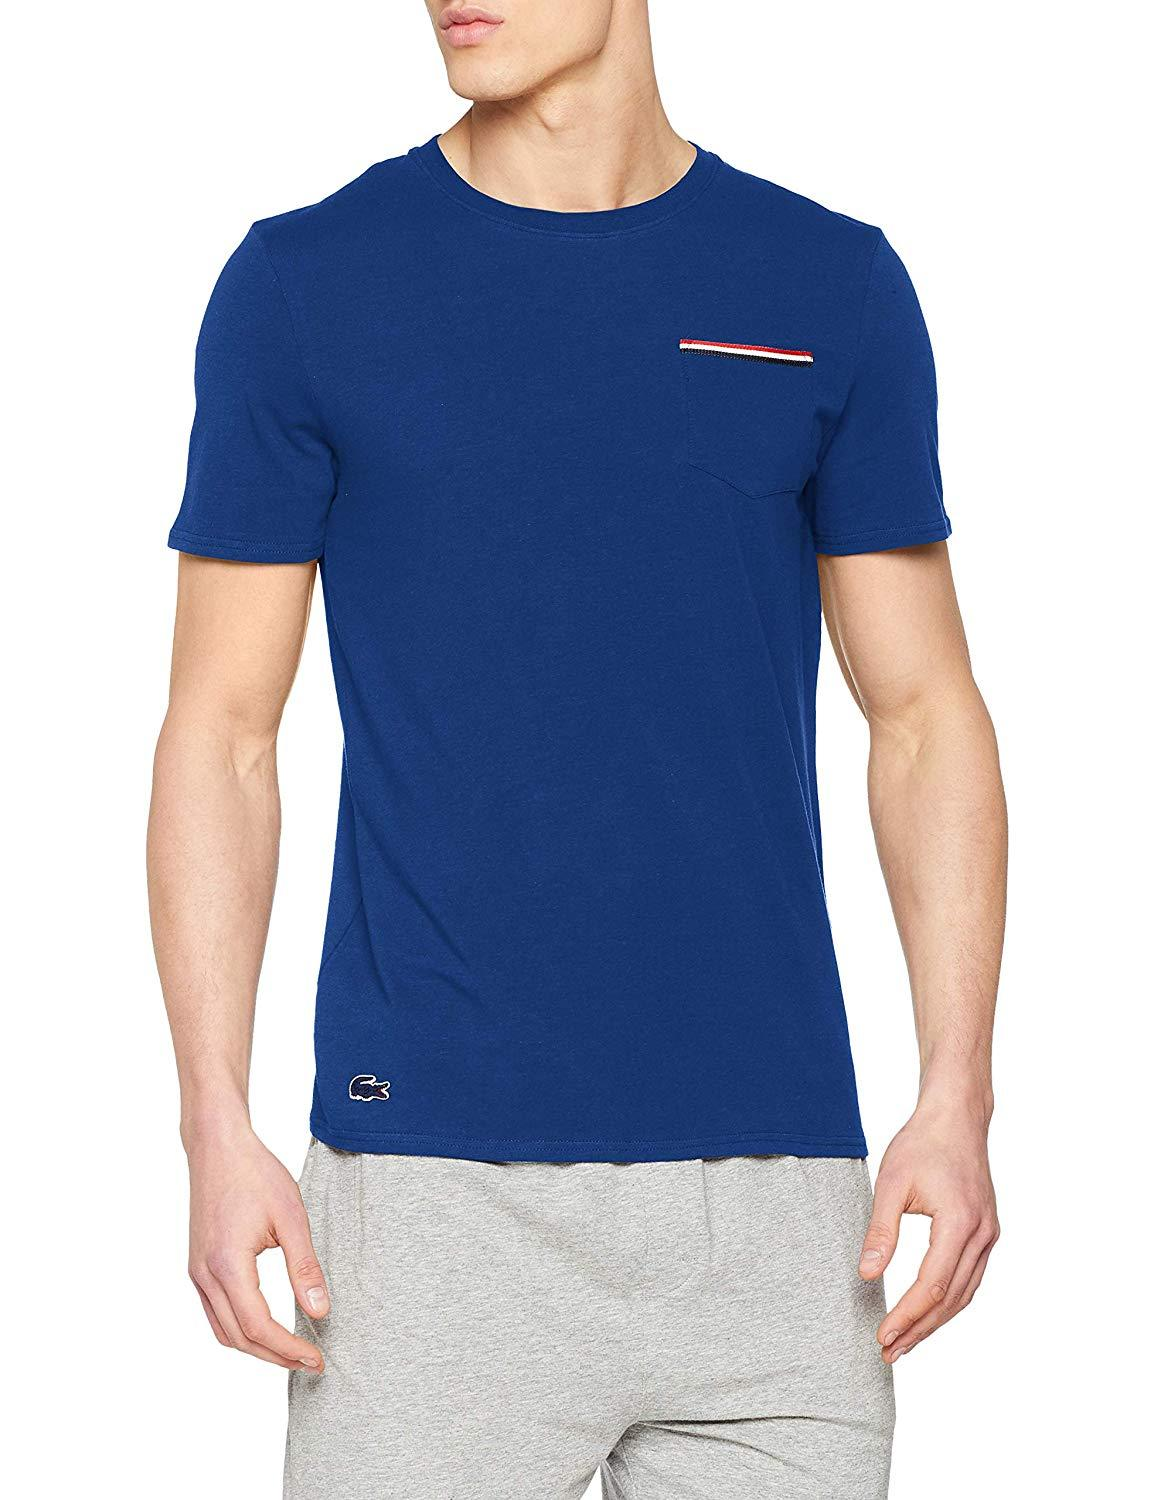 Lacoste Mens Mens French Flag Pocket Lounge Top Pajama Top